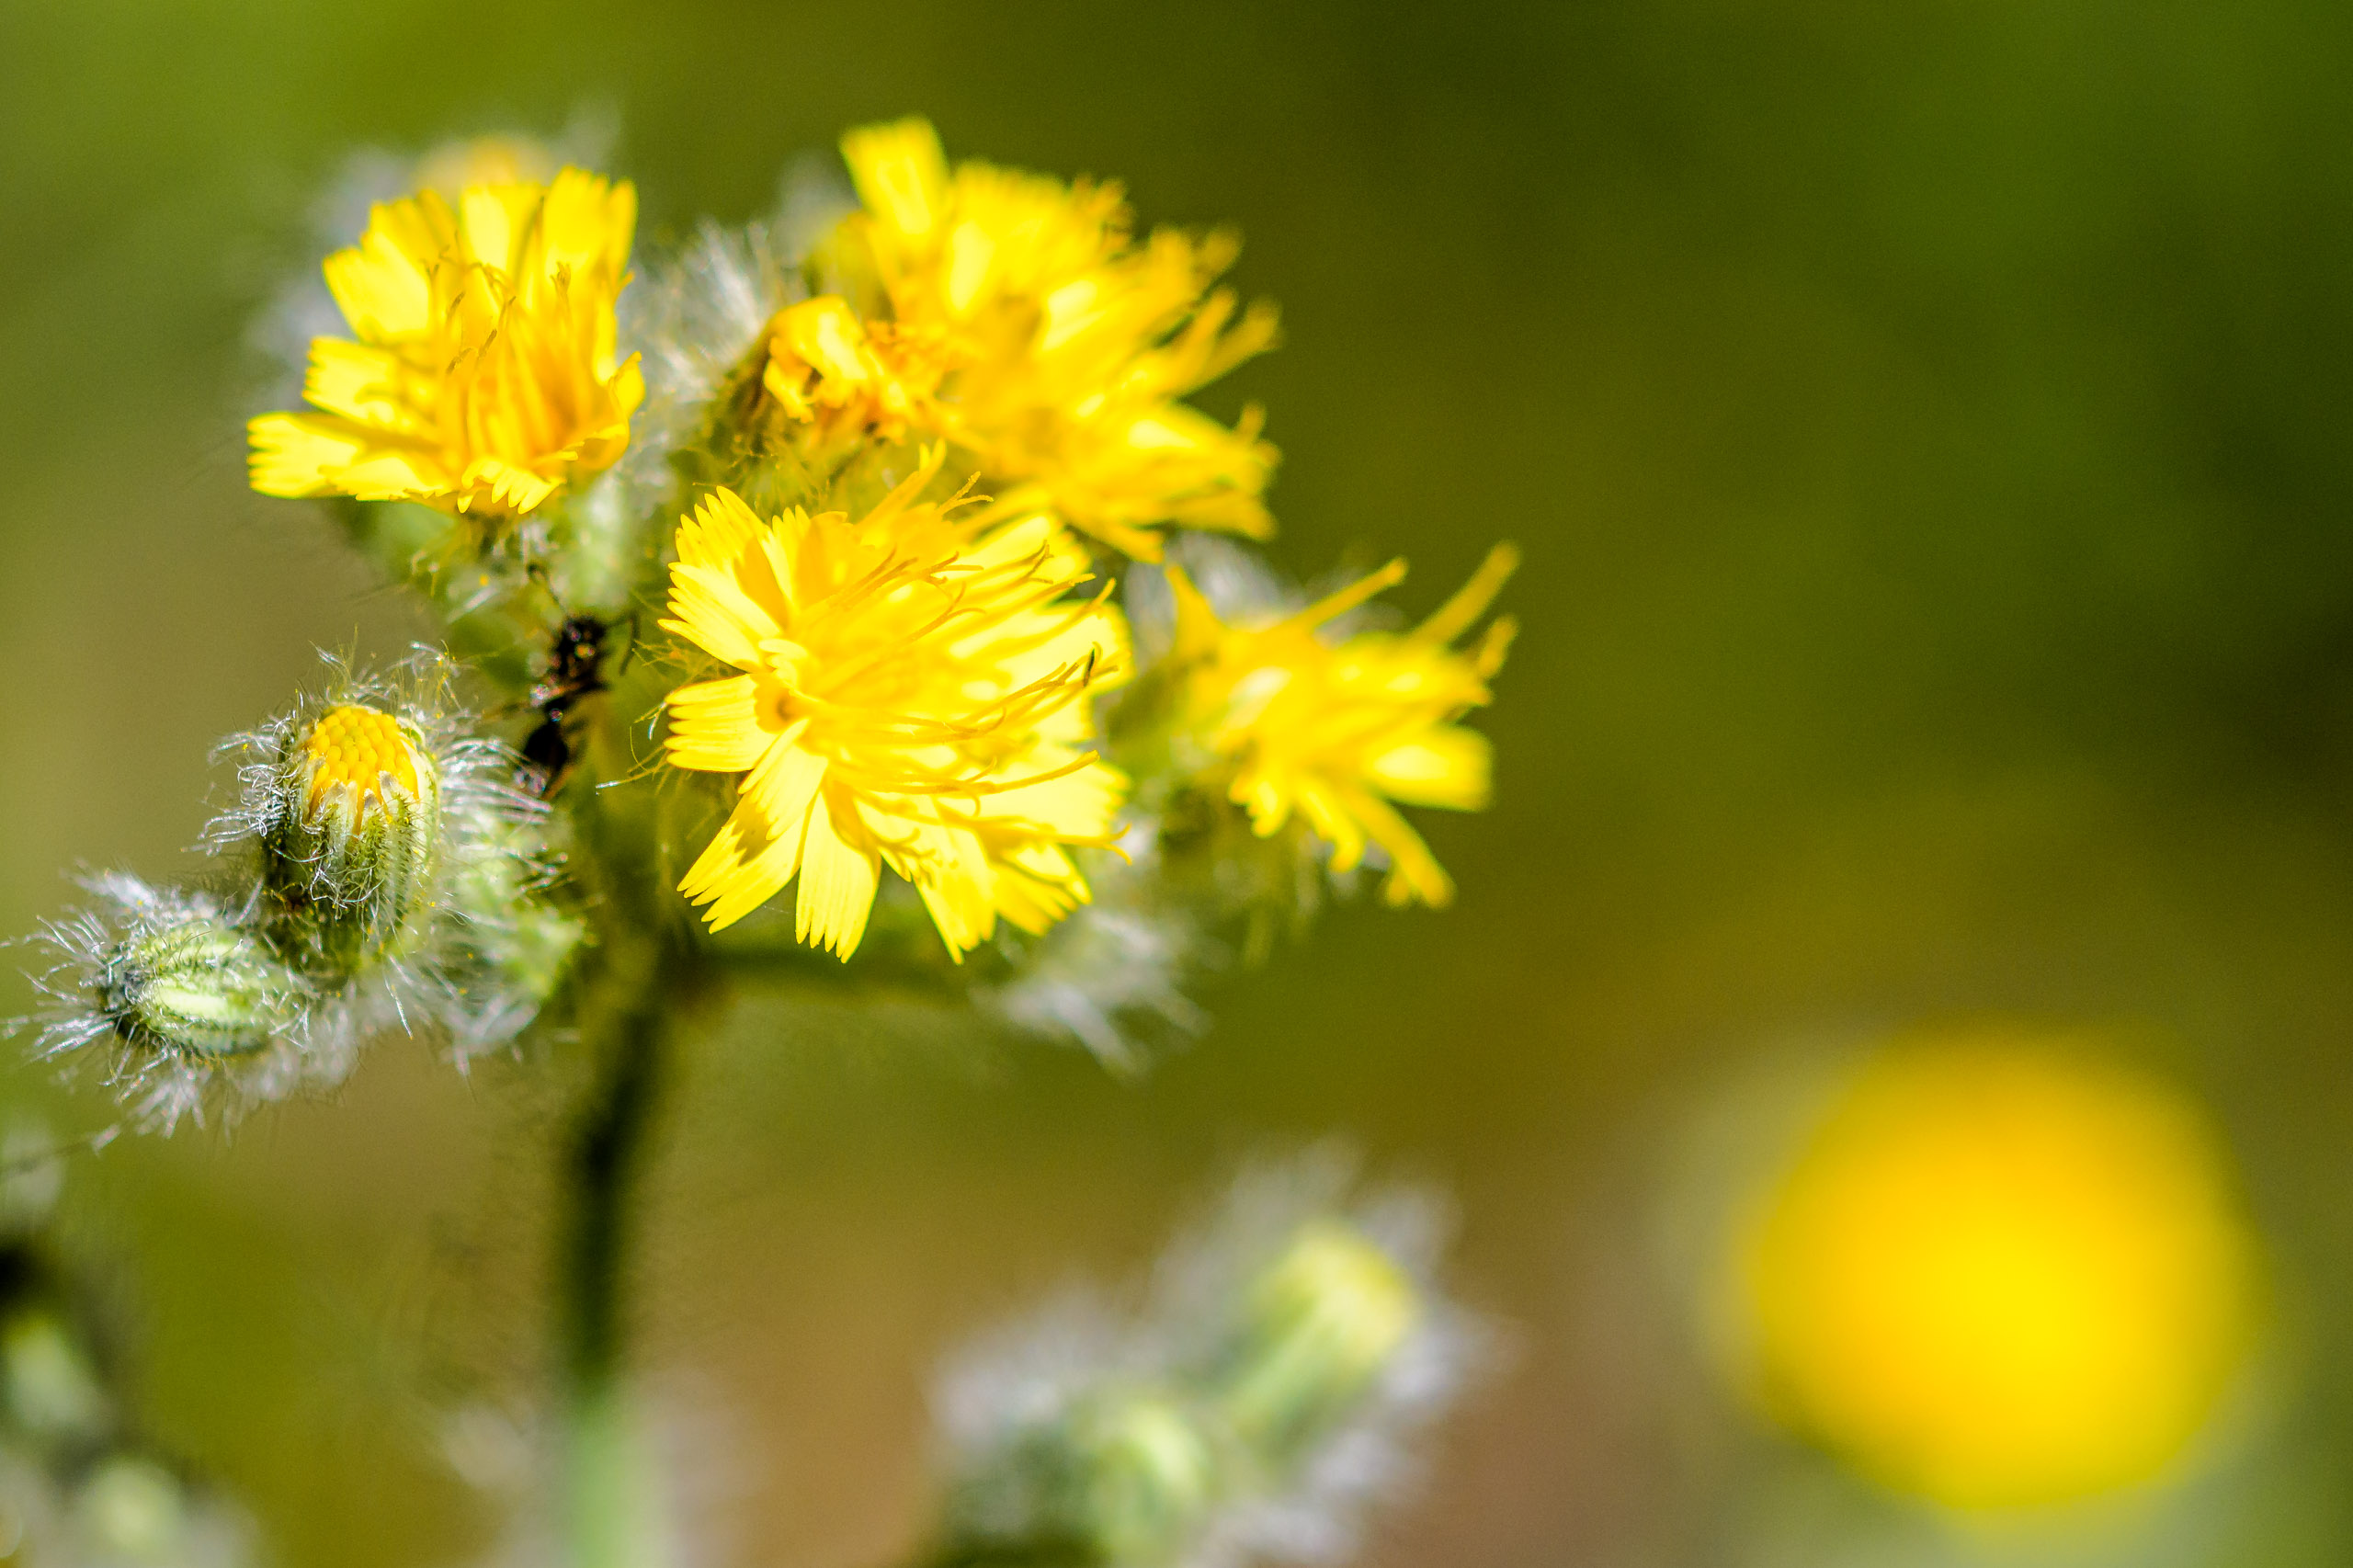 Common Groundsel - Senecio vulgaris